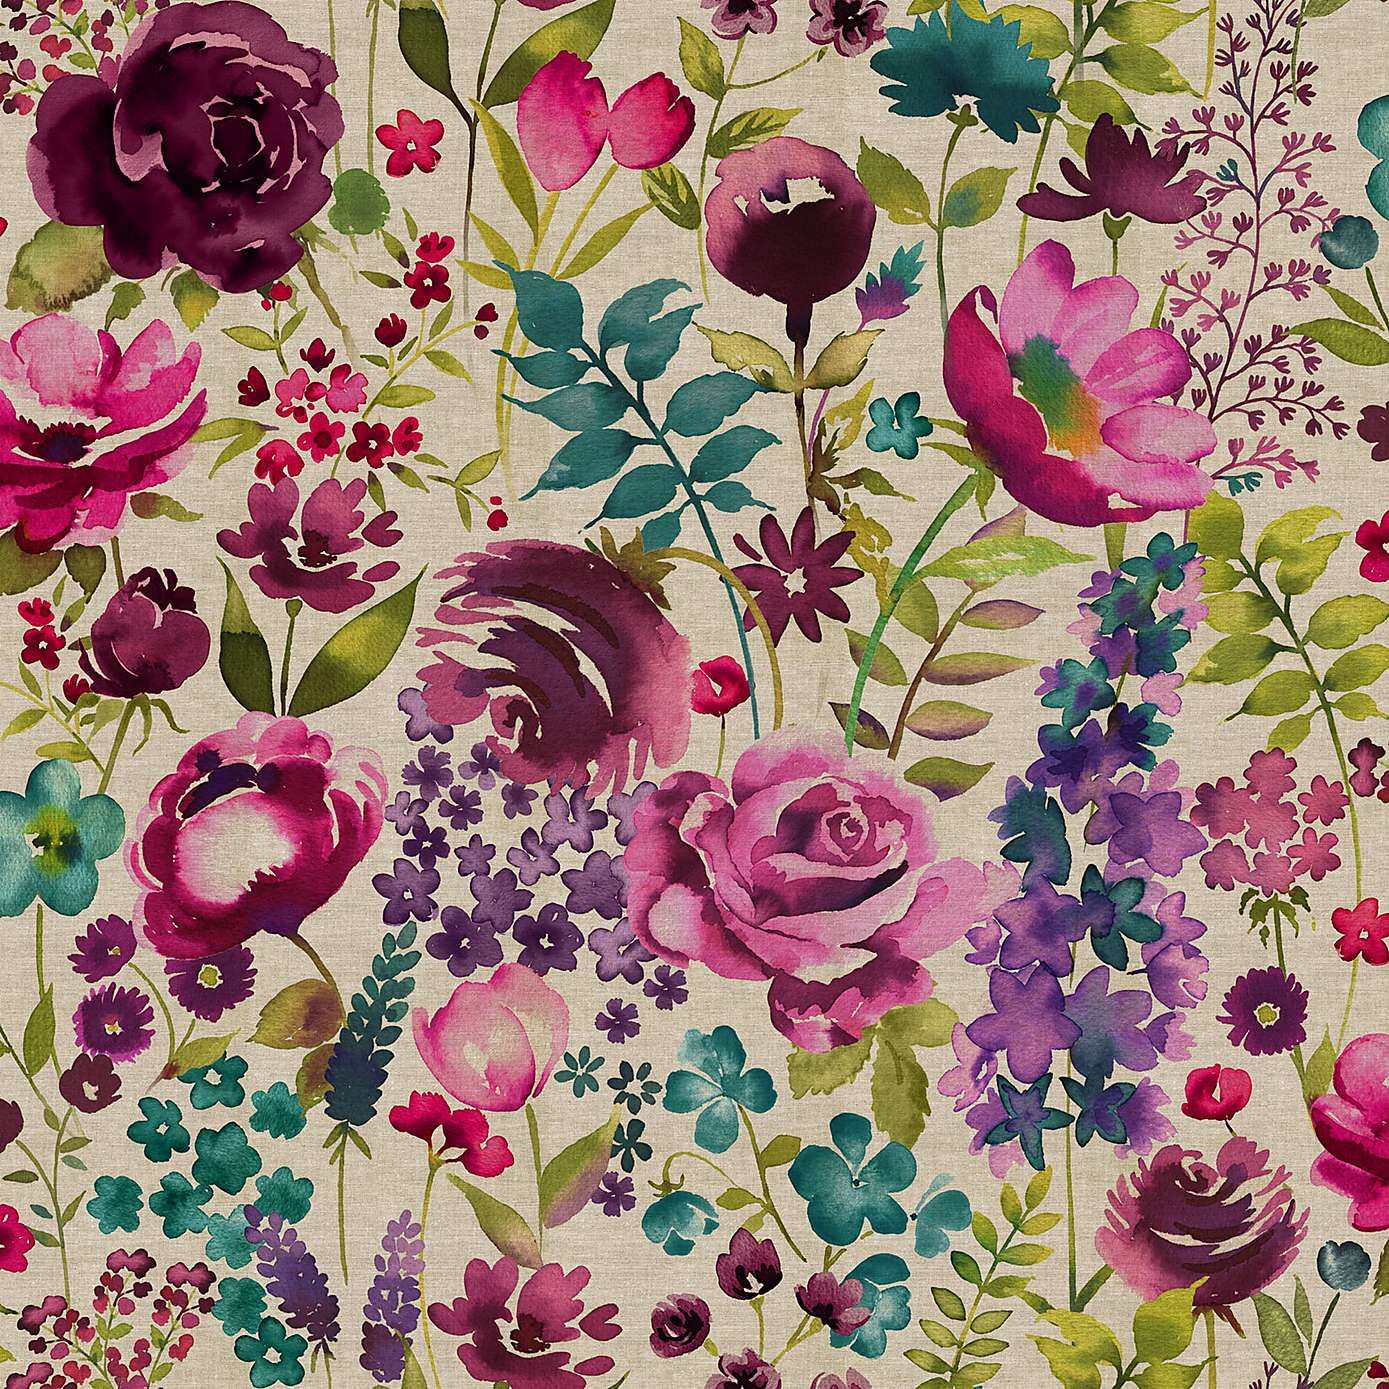 Floral Fabric Swatches Www Pixshark Com Images